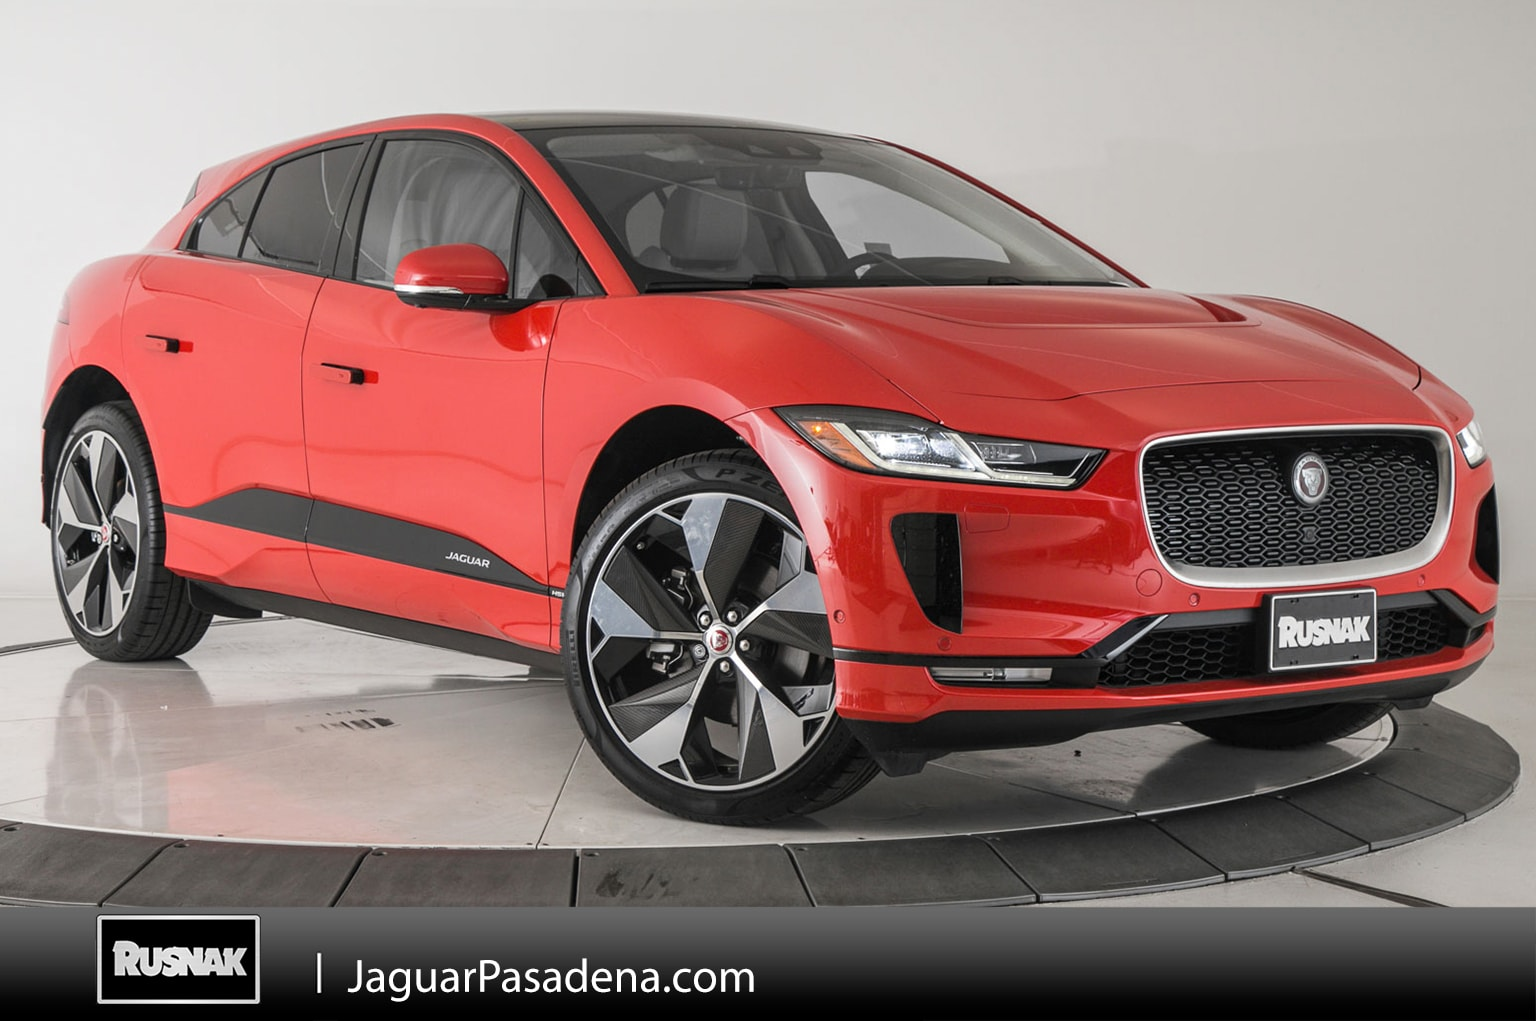 New 2019 Jaguar I-PACE First Edition SUV For Sale Los Angeles California